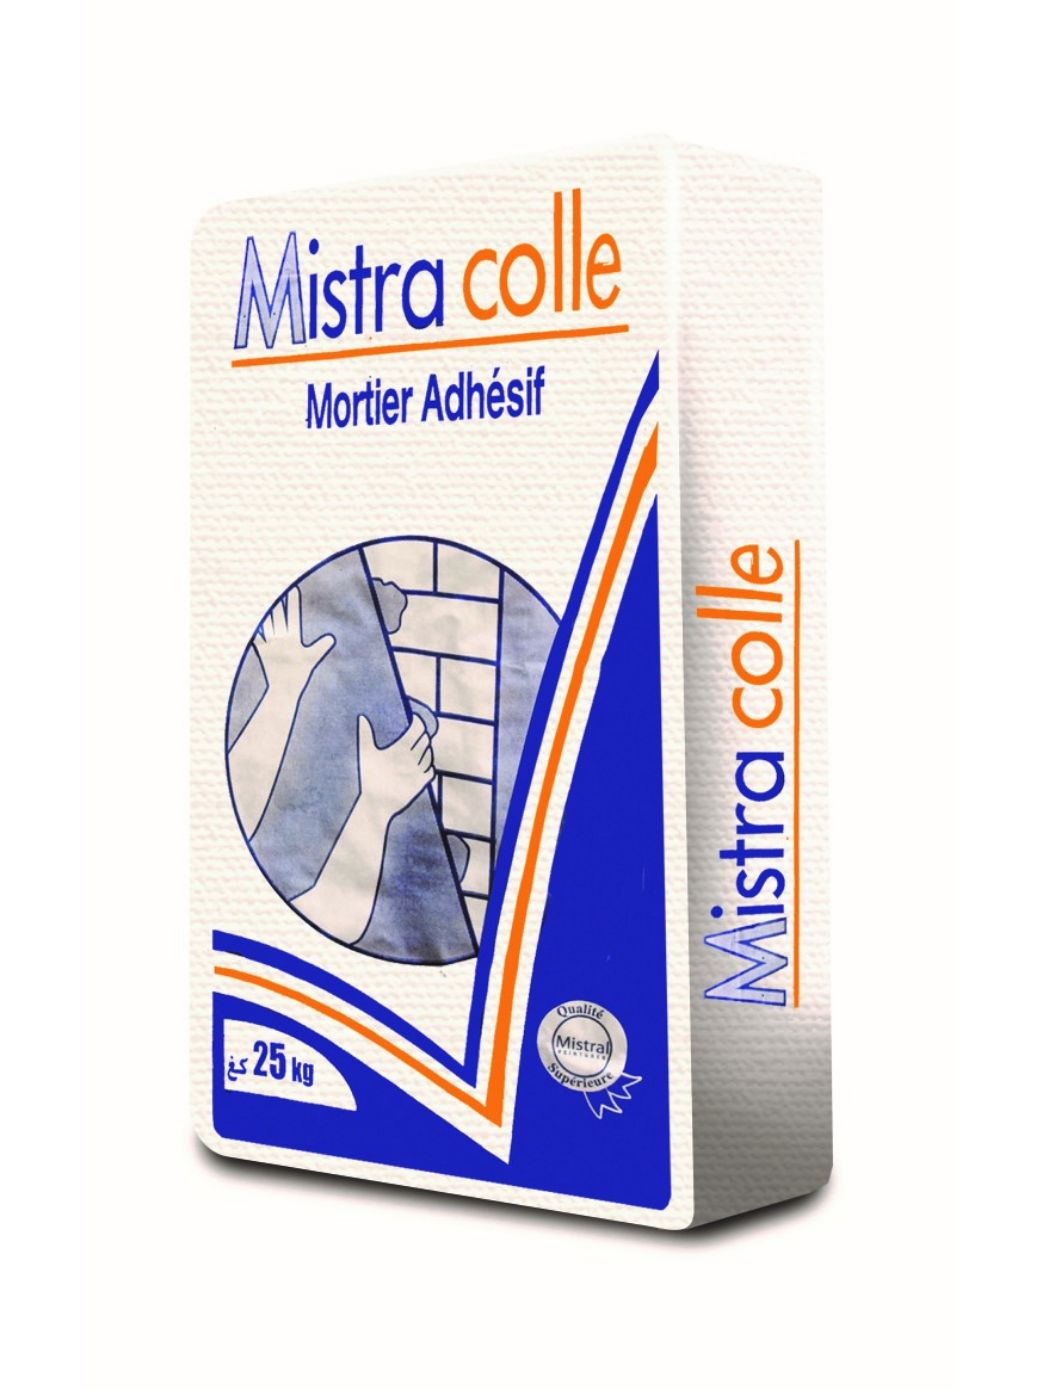 MISTRACOLLE